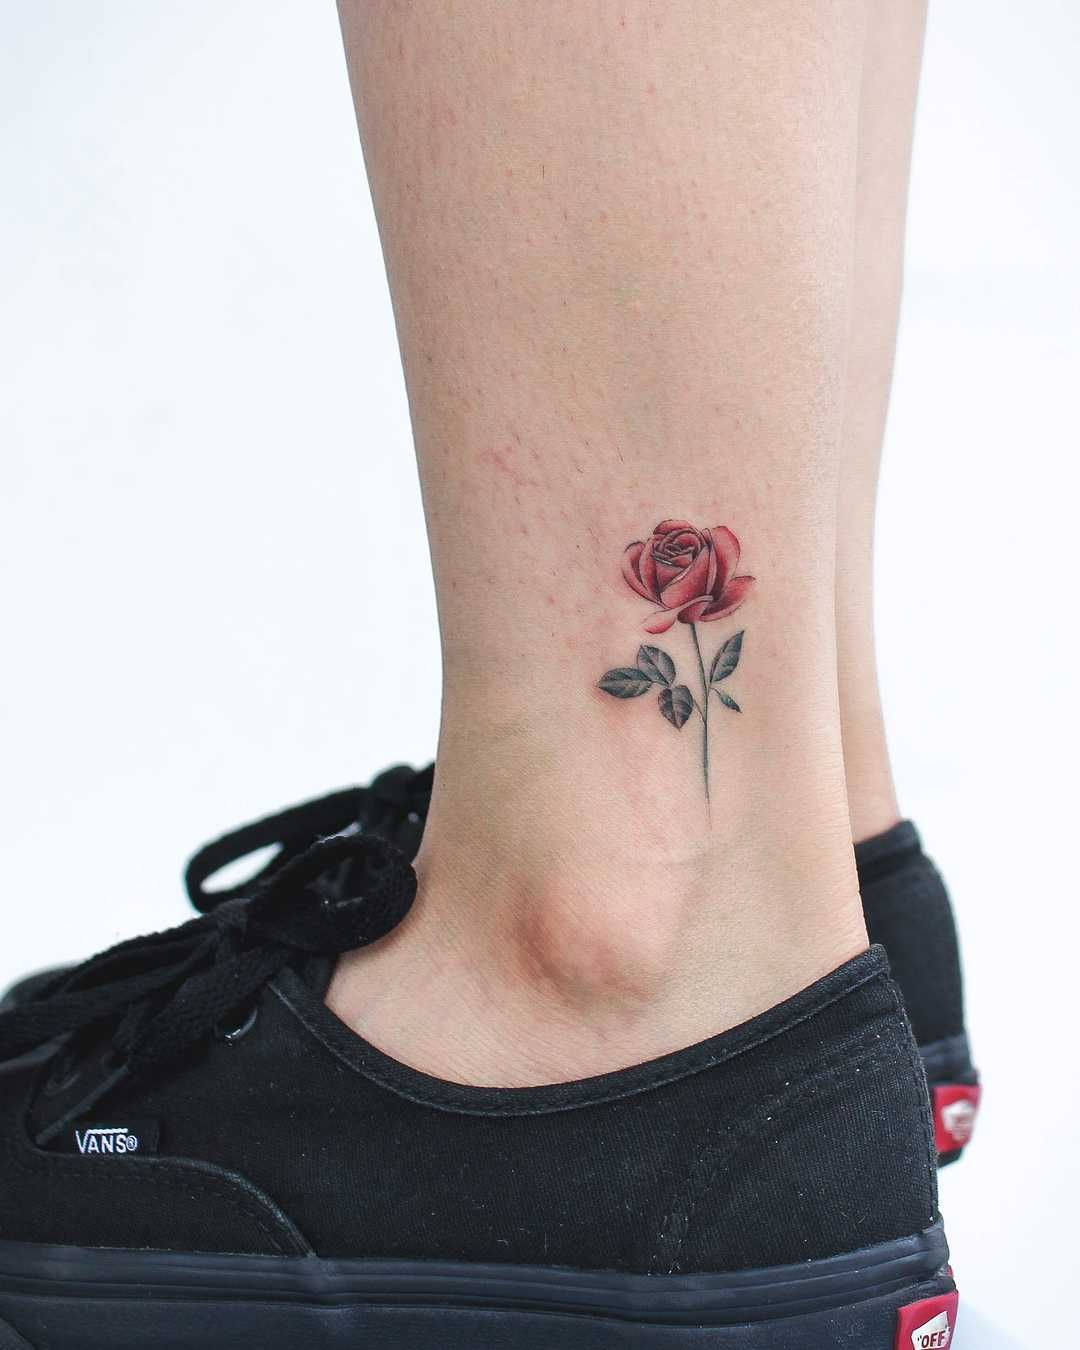 Little Red Rose Tattoo Inked On The Left Ankle Rose Tattoos For Women Rose Tattoo On Ankle Small Rose Tattoo